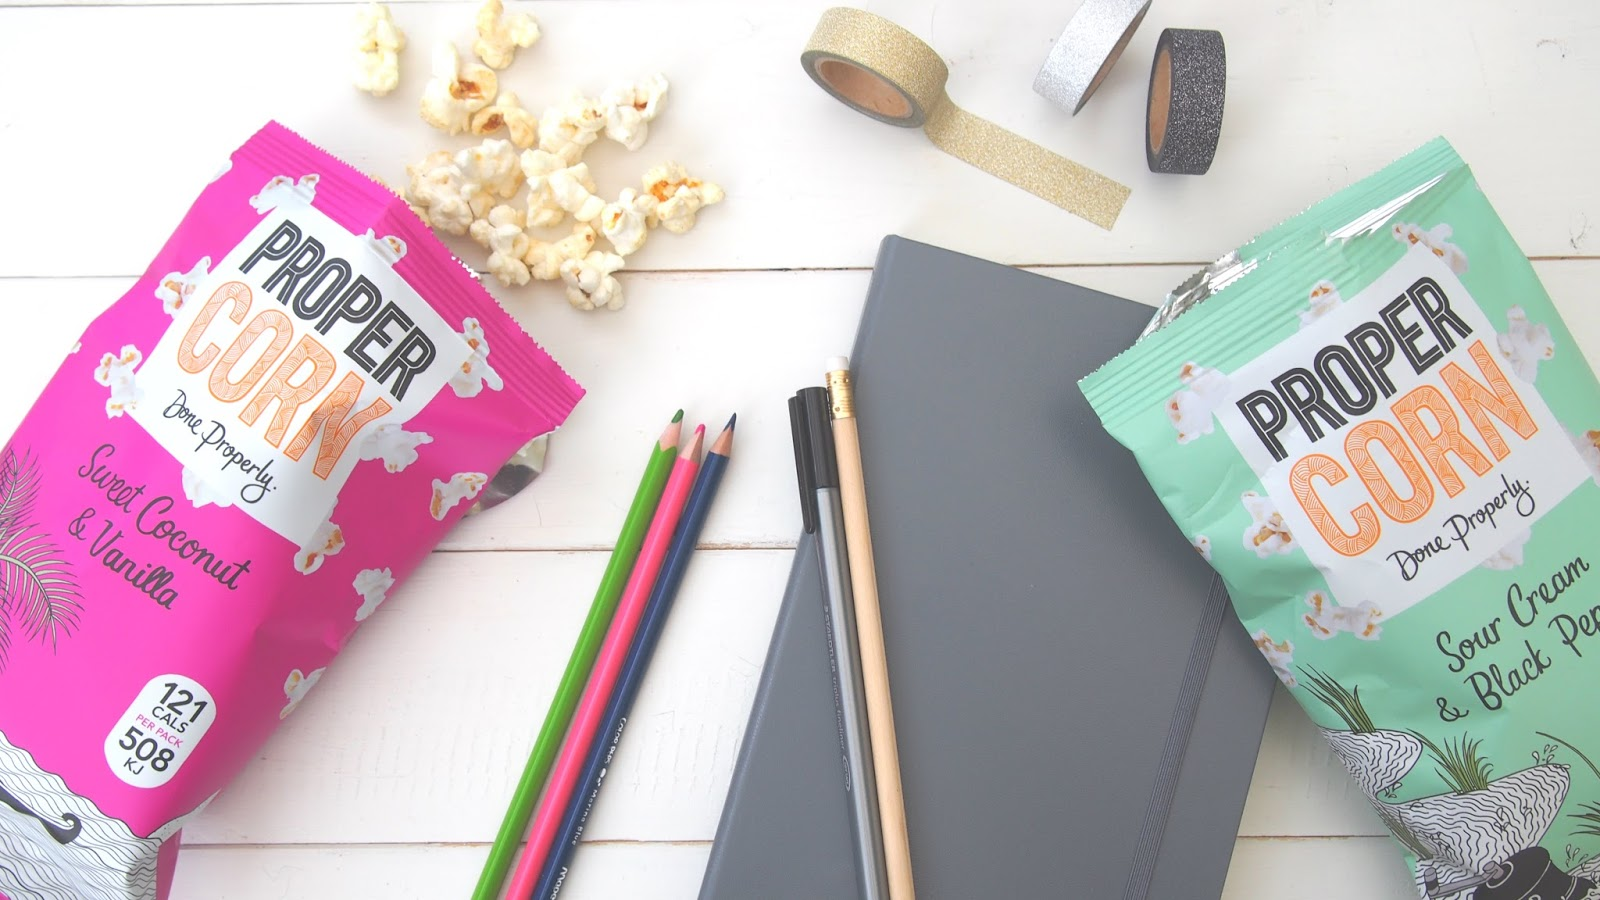 Healthy snacking with PROPERCORN